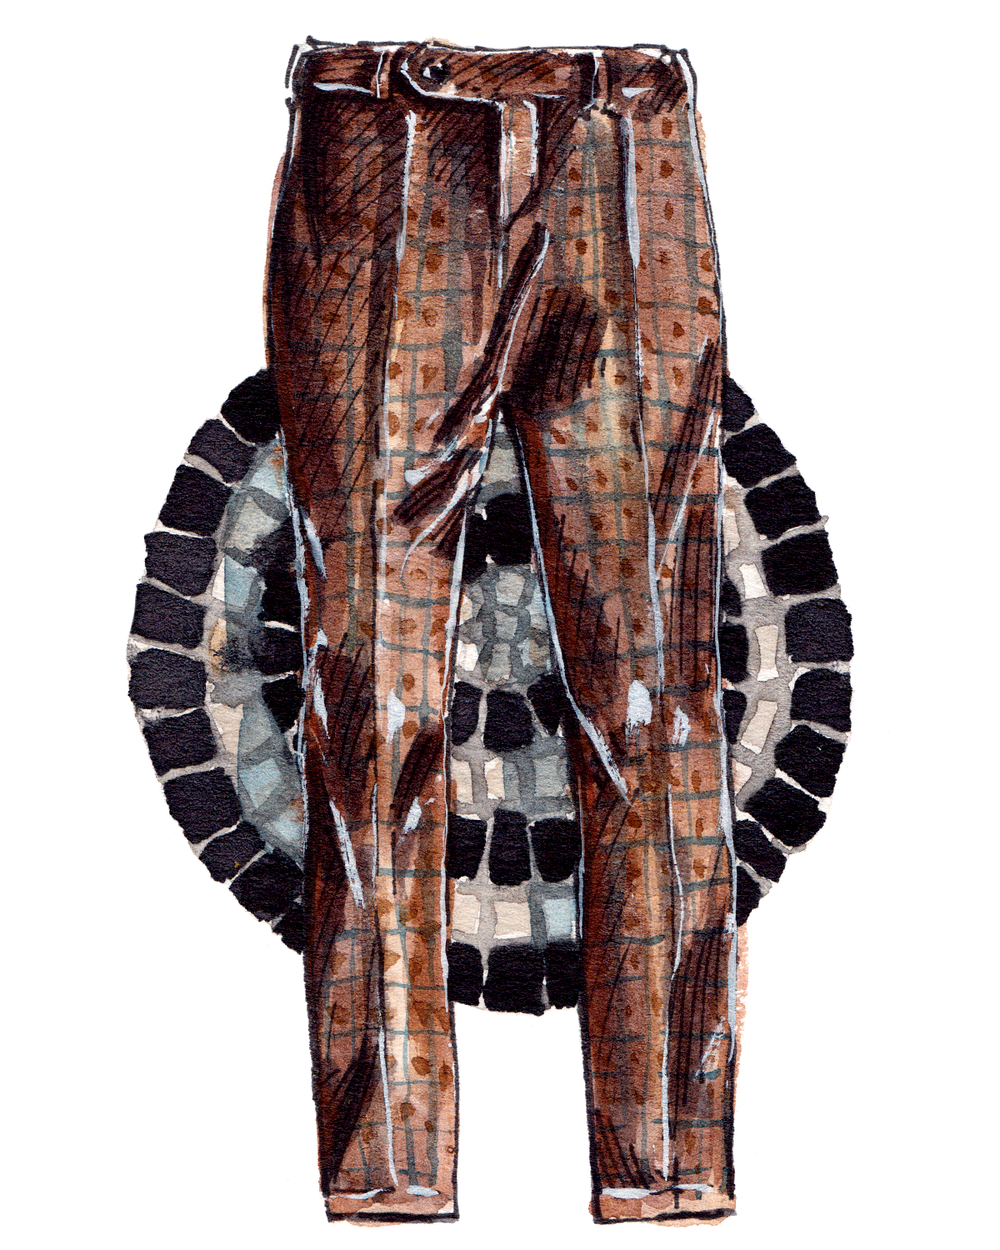 Painting of brown Zanella pants, with a mosaic background